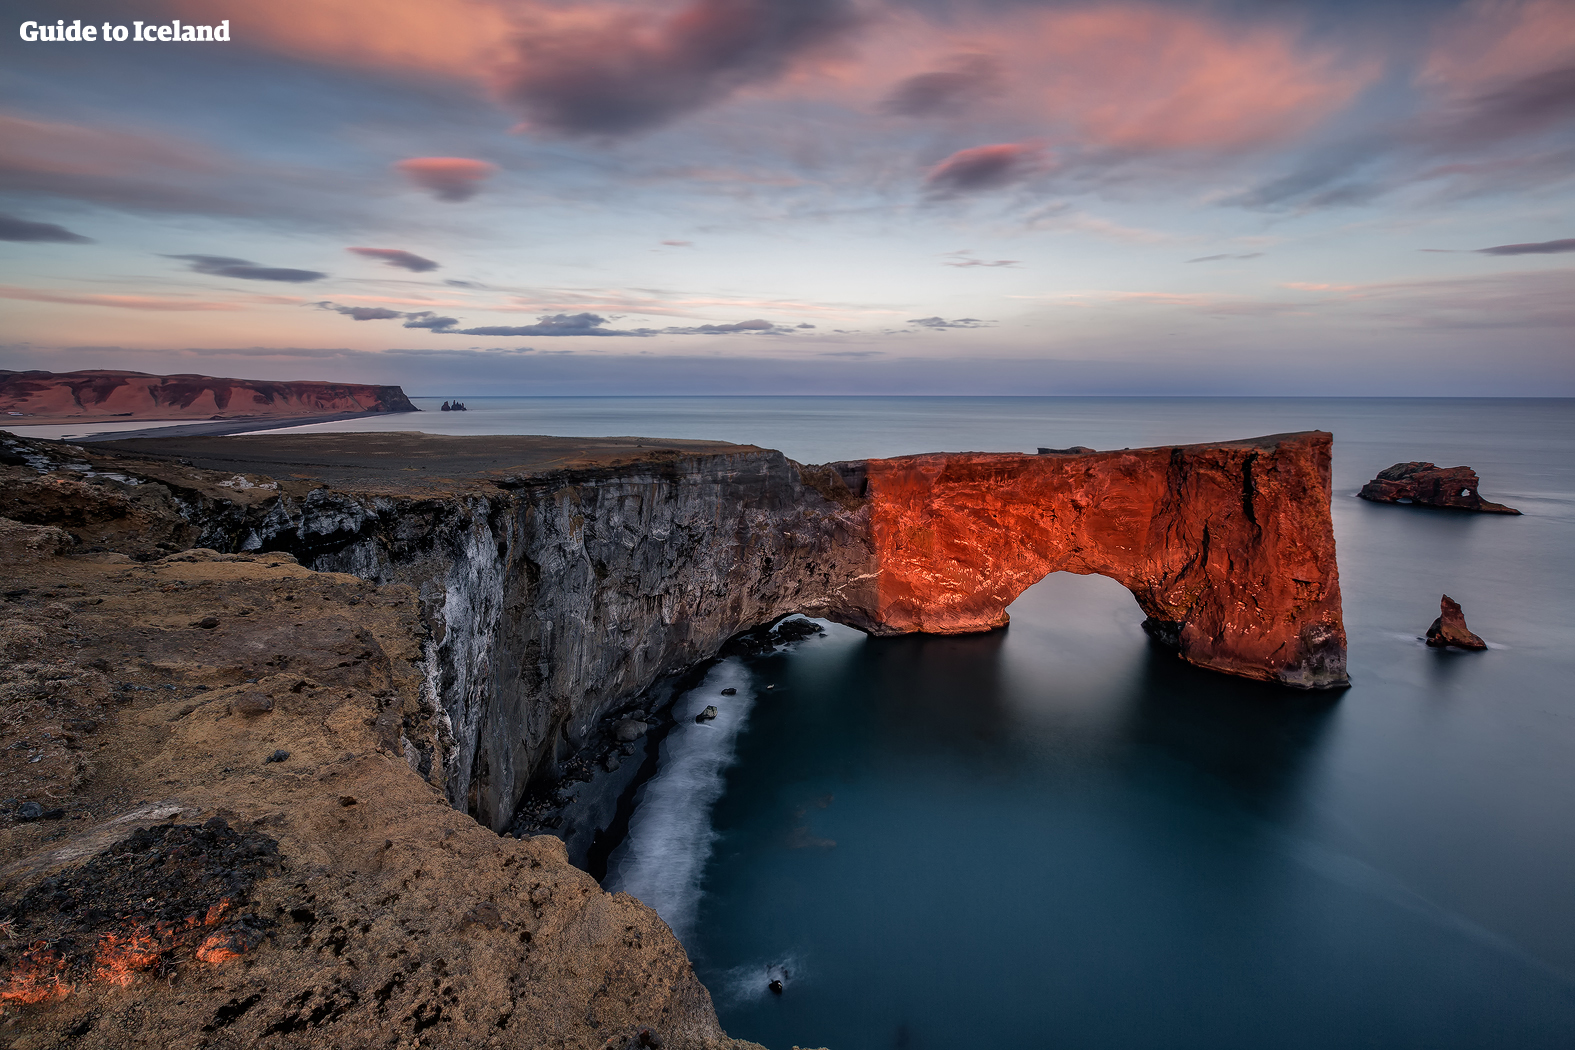 Dyrhólaey is an enormous stone arch that extends into the sea off South Iceland's coast.